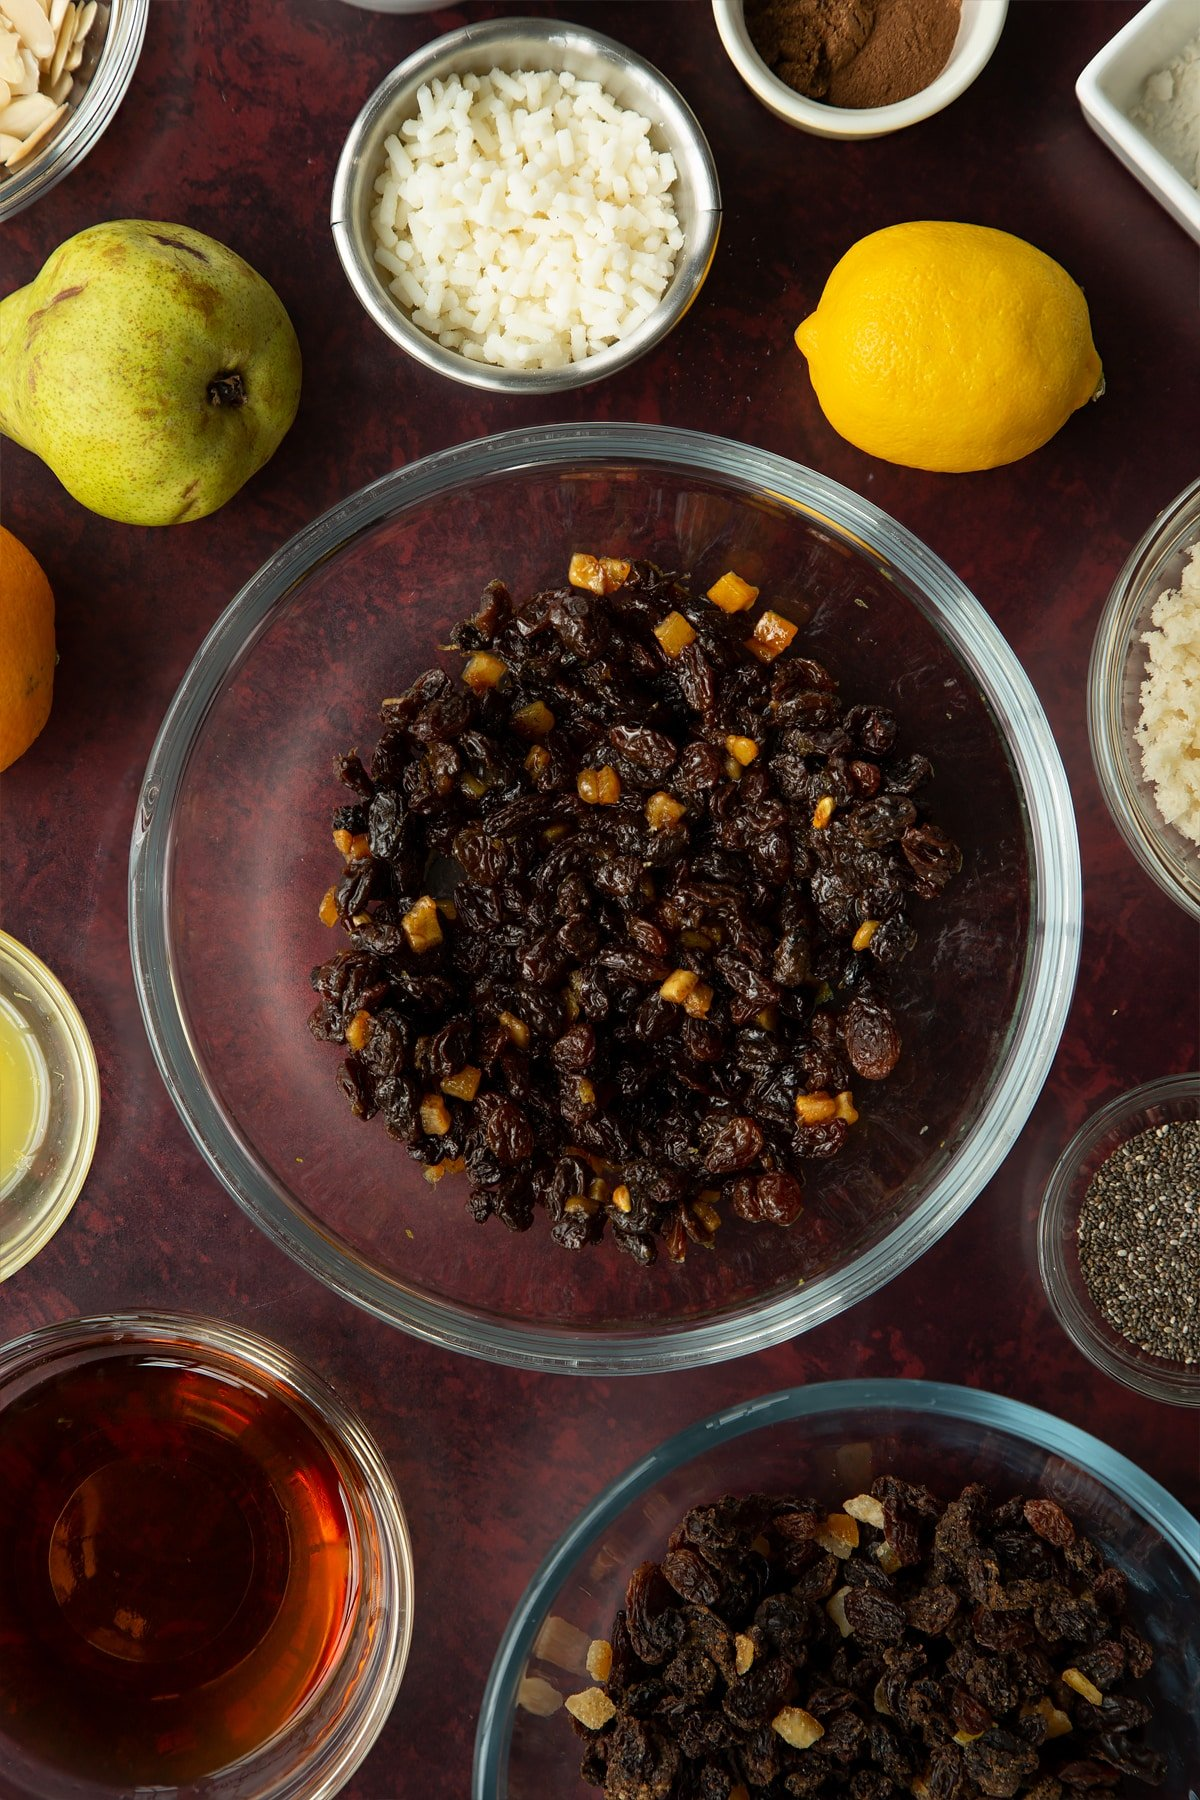 Mixed fruit cooked in brandy, citrus juice and zest in a glass mixing bowl. Ingredients to make vegan Christmas pudding surround the bowl.